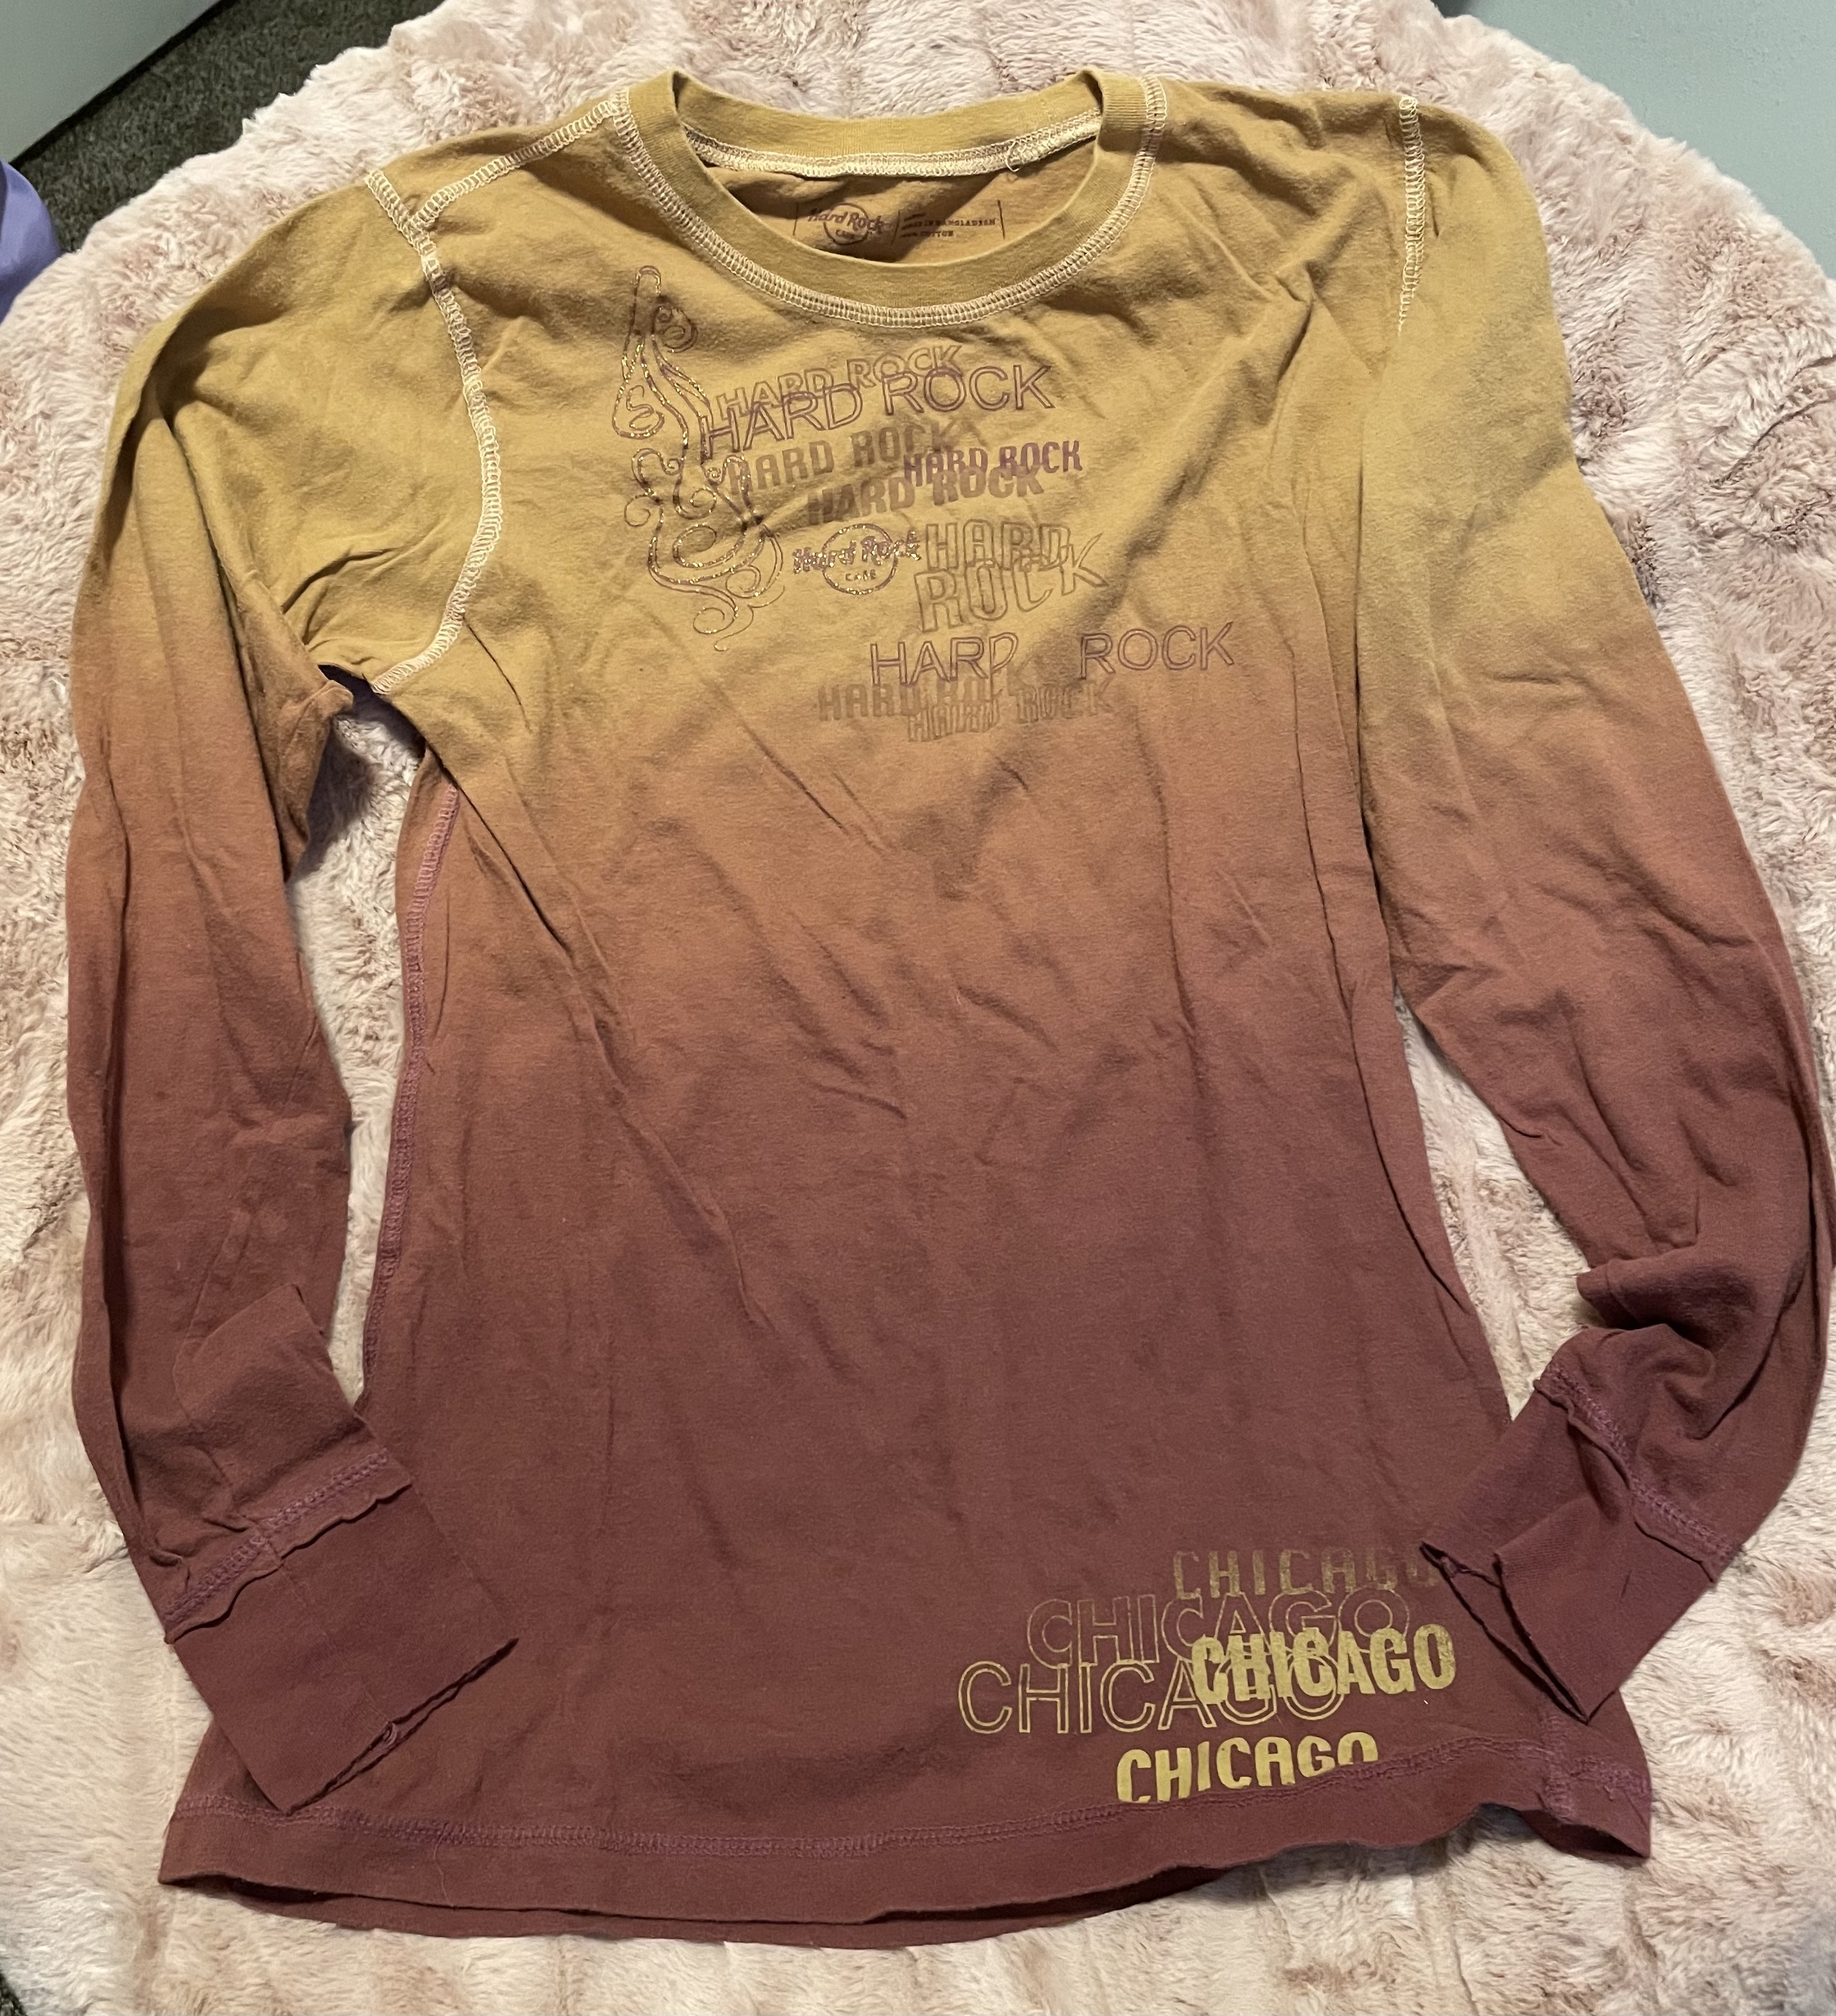 Hard Rock Cafe   Long Sleeve Yellow, Orange, Brown Ombre   Chicago Shirt   Y2K Cyber Aesthetic    Women's Large Shirt